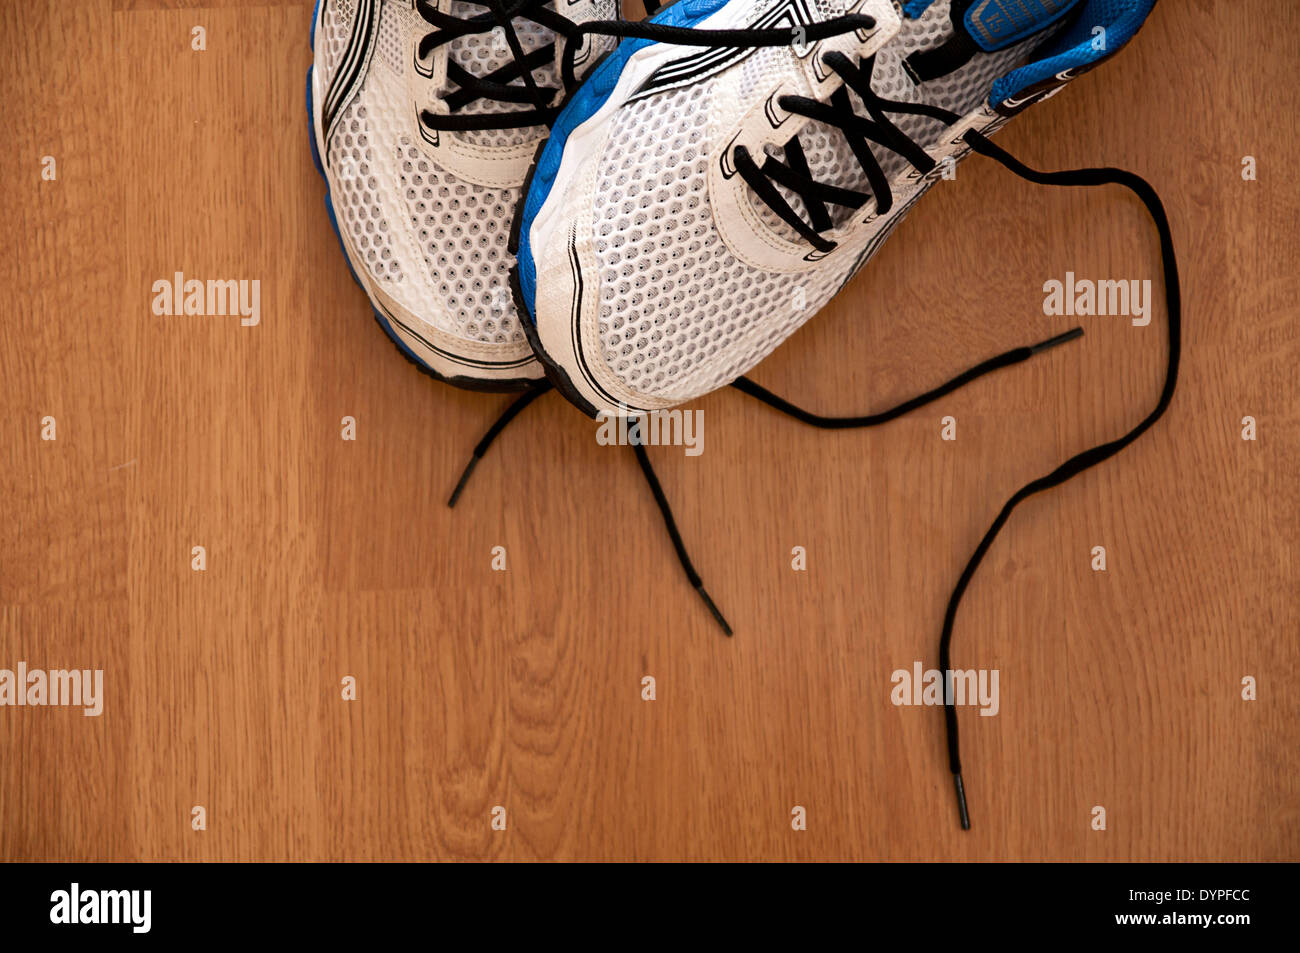 Sport: running shoes. - Stock Image